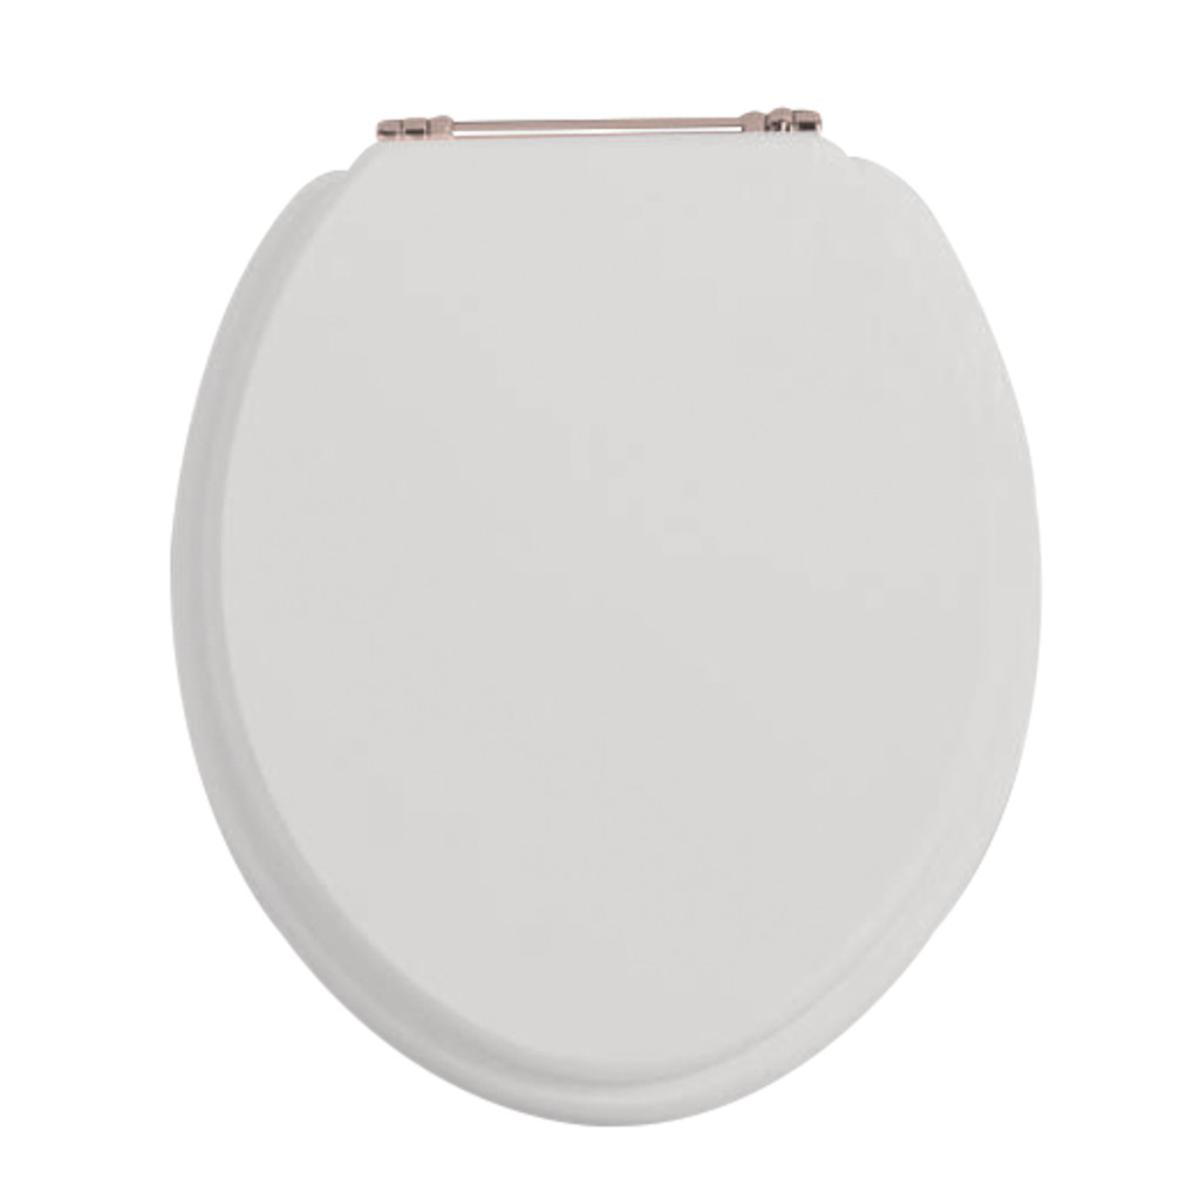 Dove Grey Toilet Seat With Rose Gold Standard Hinge Wc